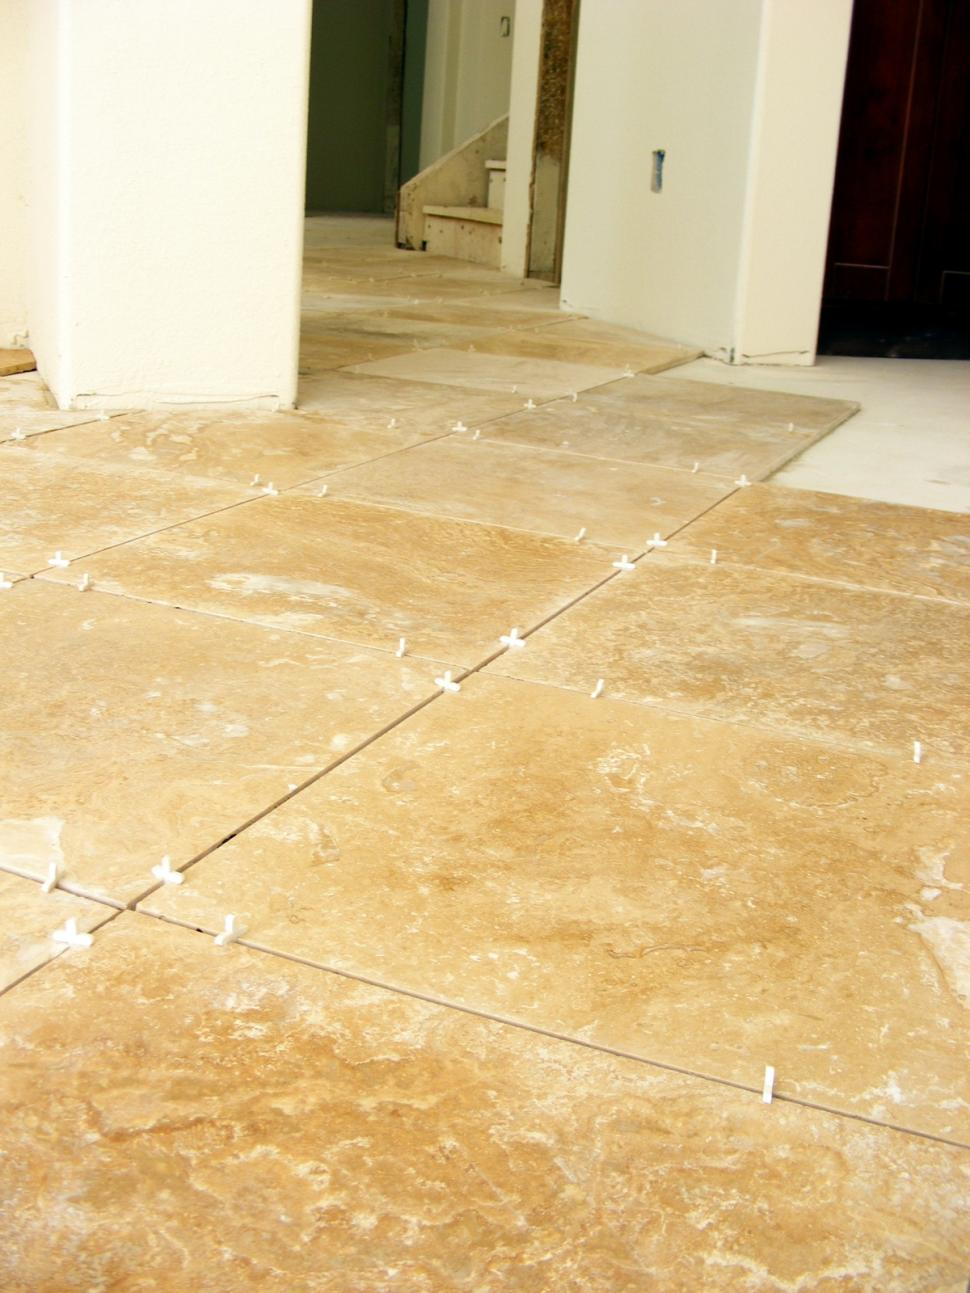 Download Free Stock Photo of Working With Tile Floors